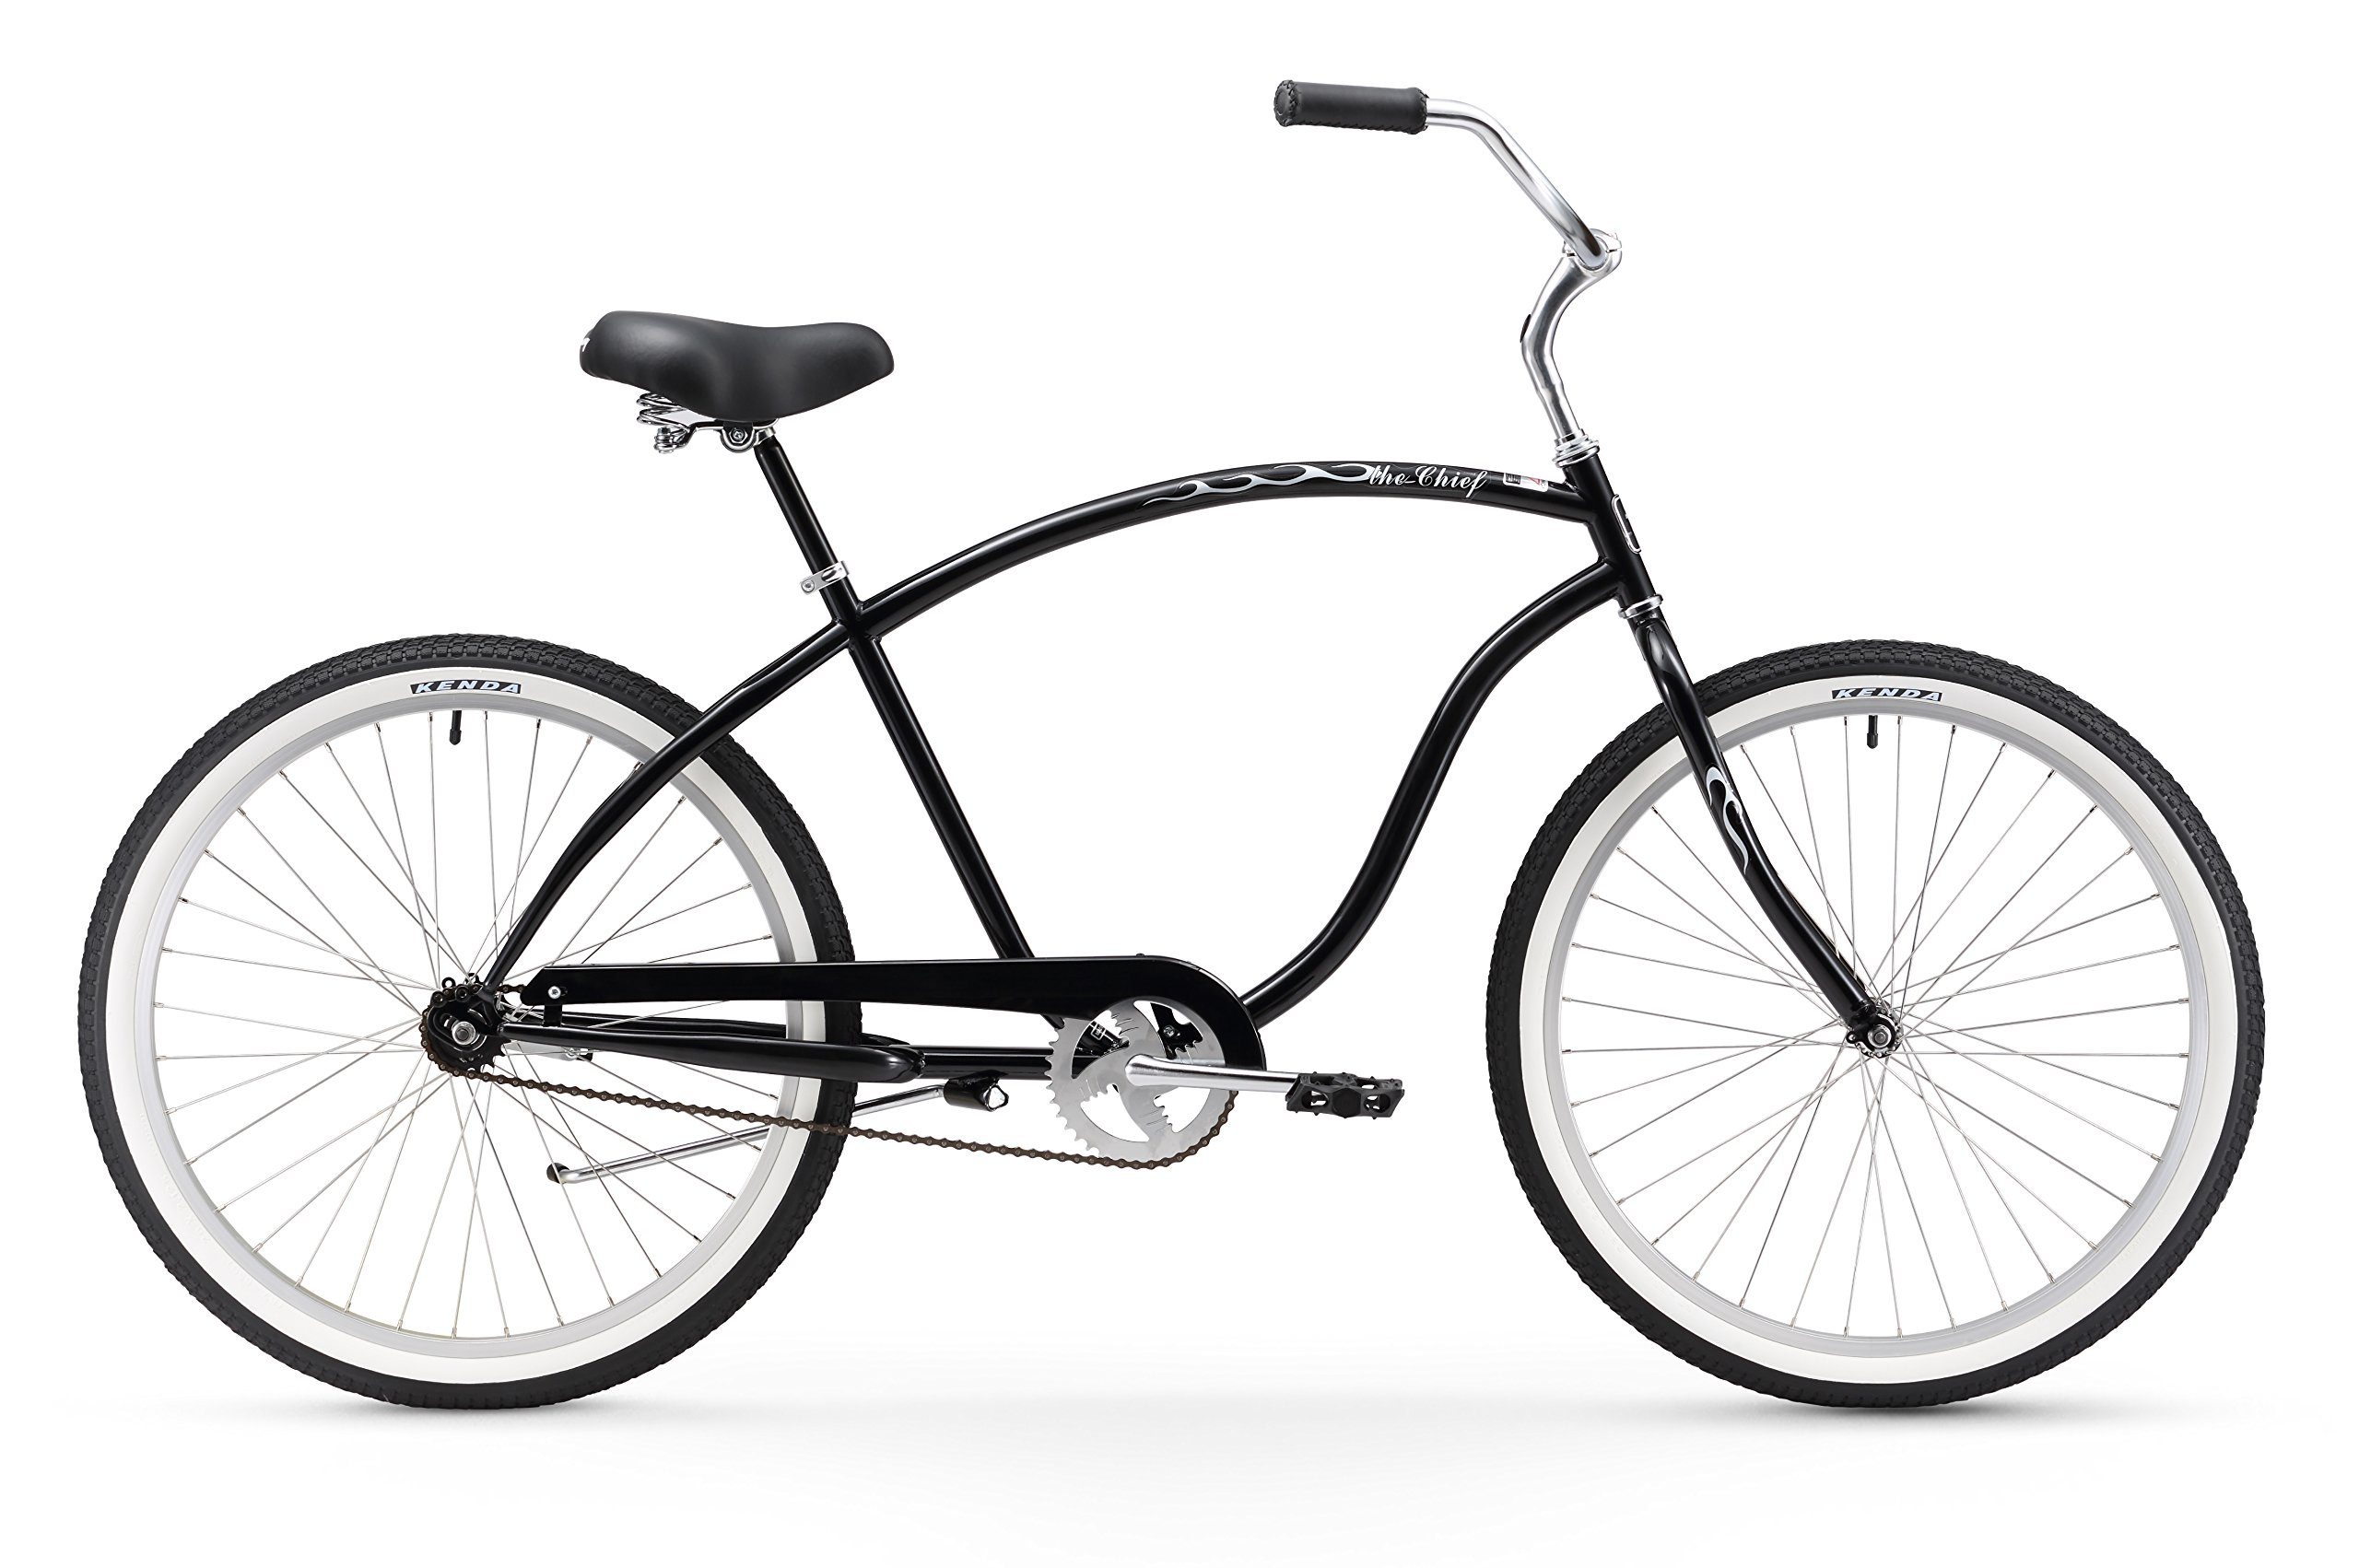 Firmstrong Chief Man Beach Cruiser Bicycle 26 Inch